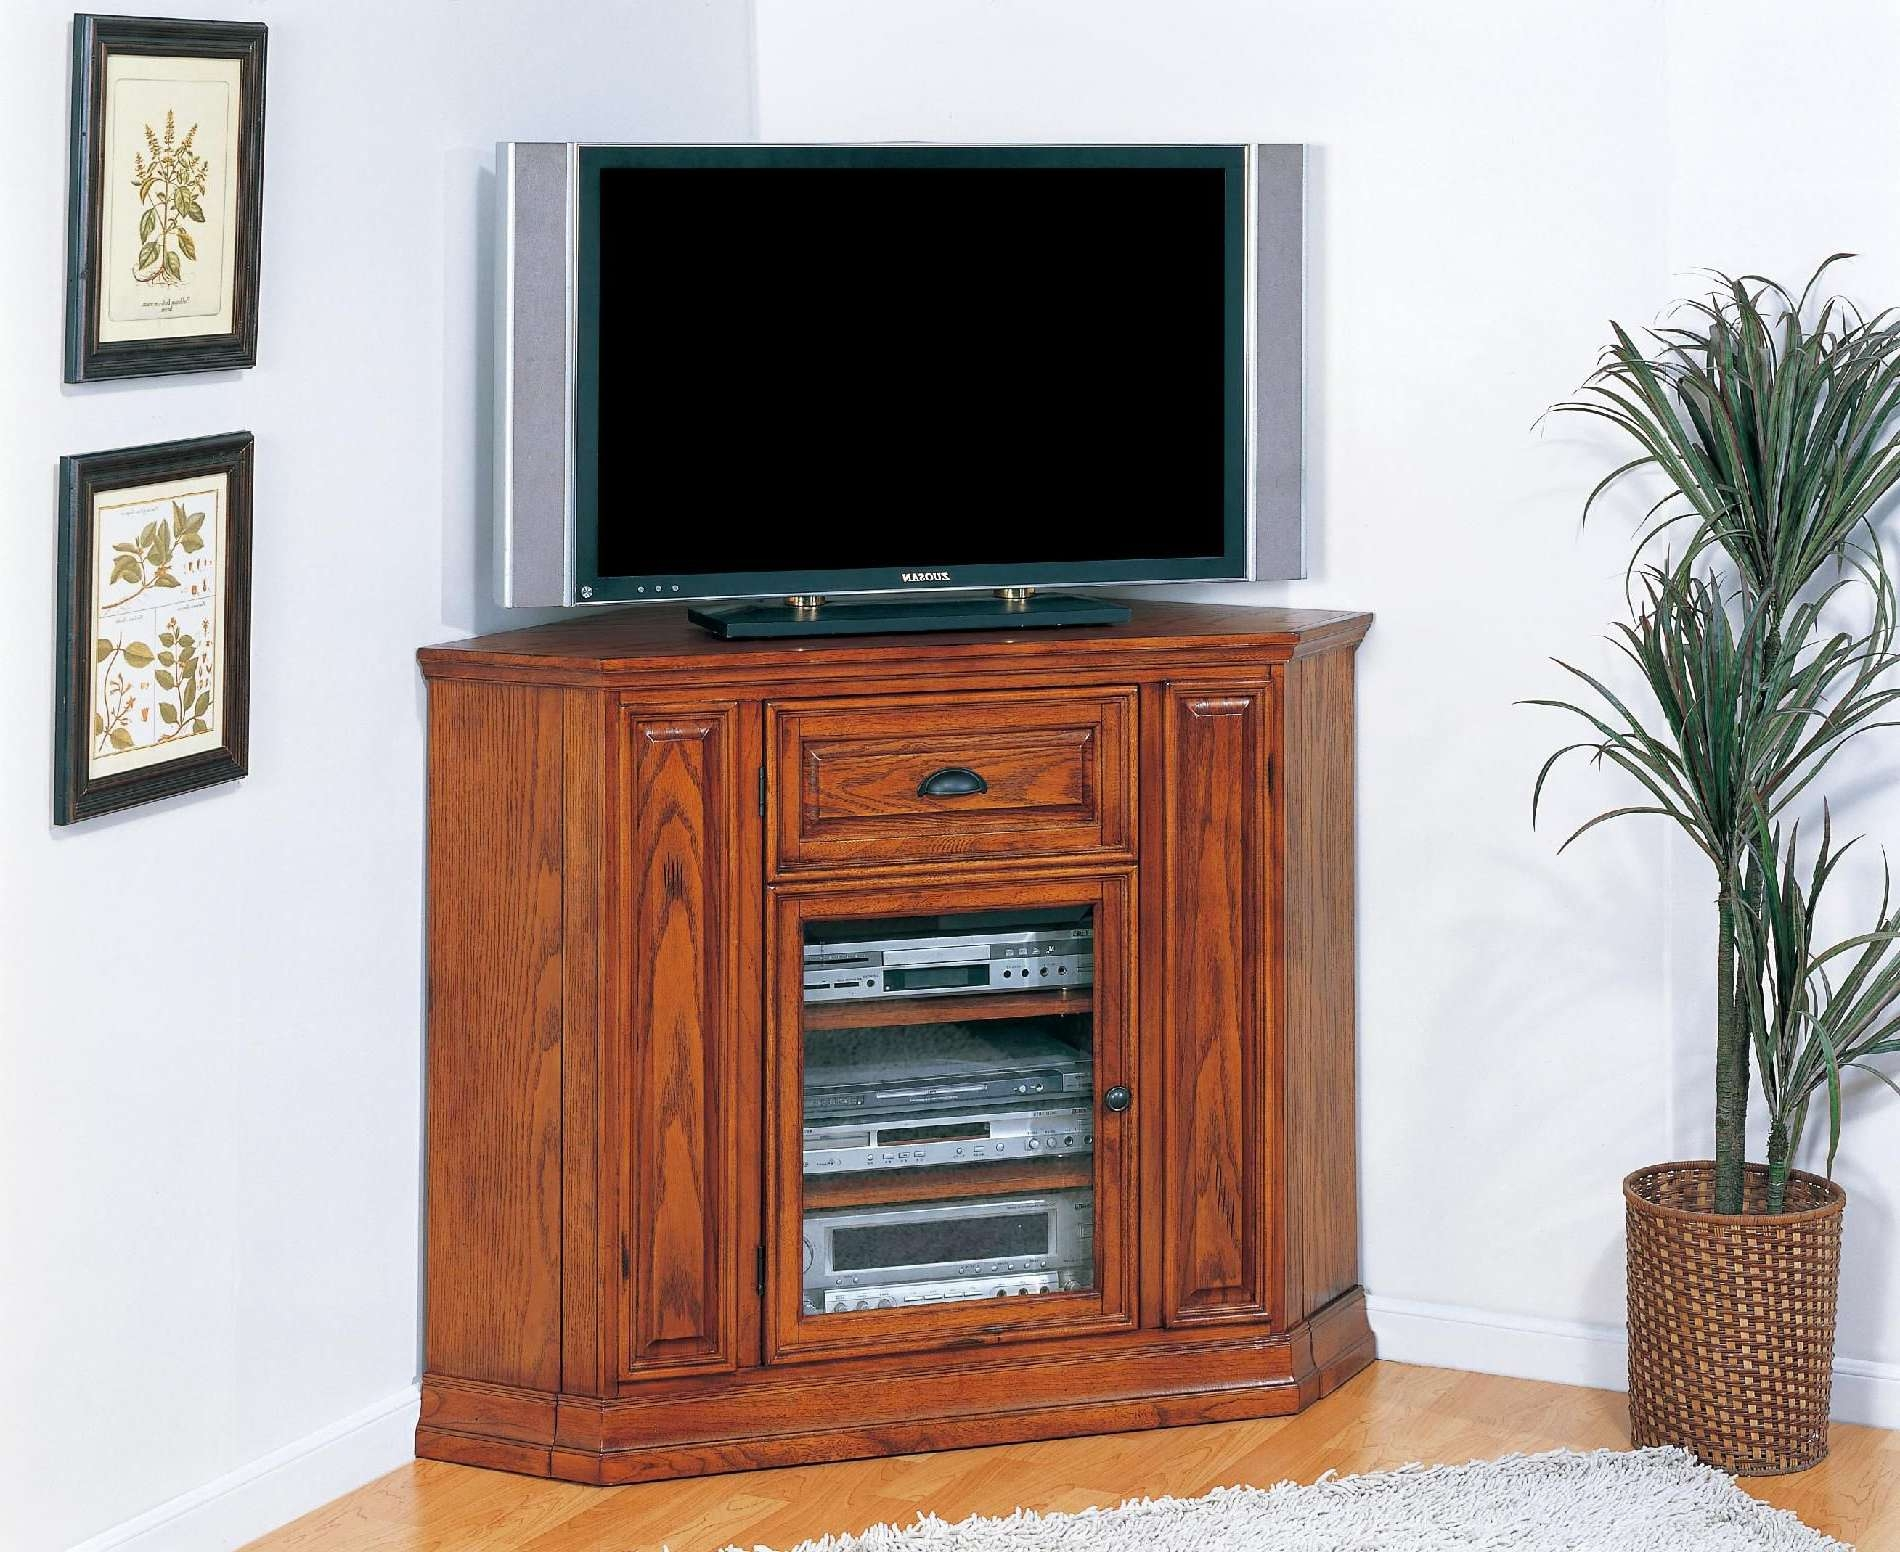 Tv Stand : Tall Narrow Tv Stands For Flat Screens And Standstall Within Tall Skinny Tv Stands (View 12 of 15)